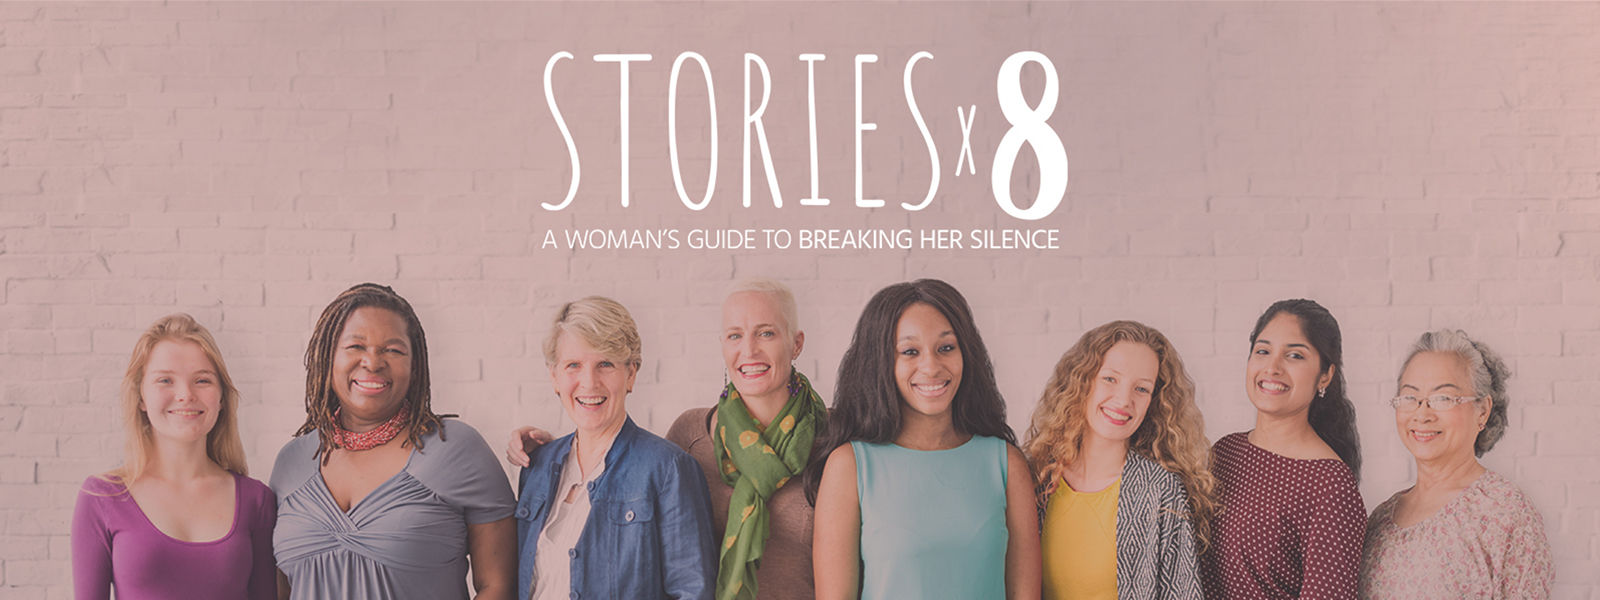 STORIESx8: A Woman's Guide to Breaking Her Silence